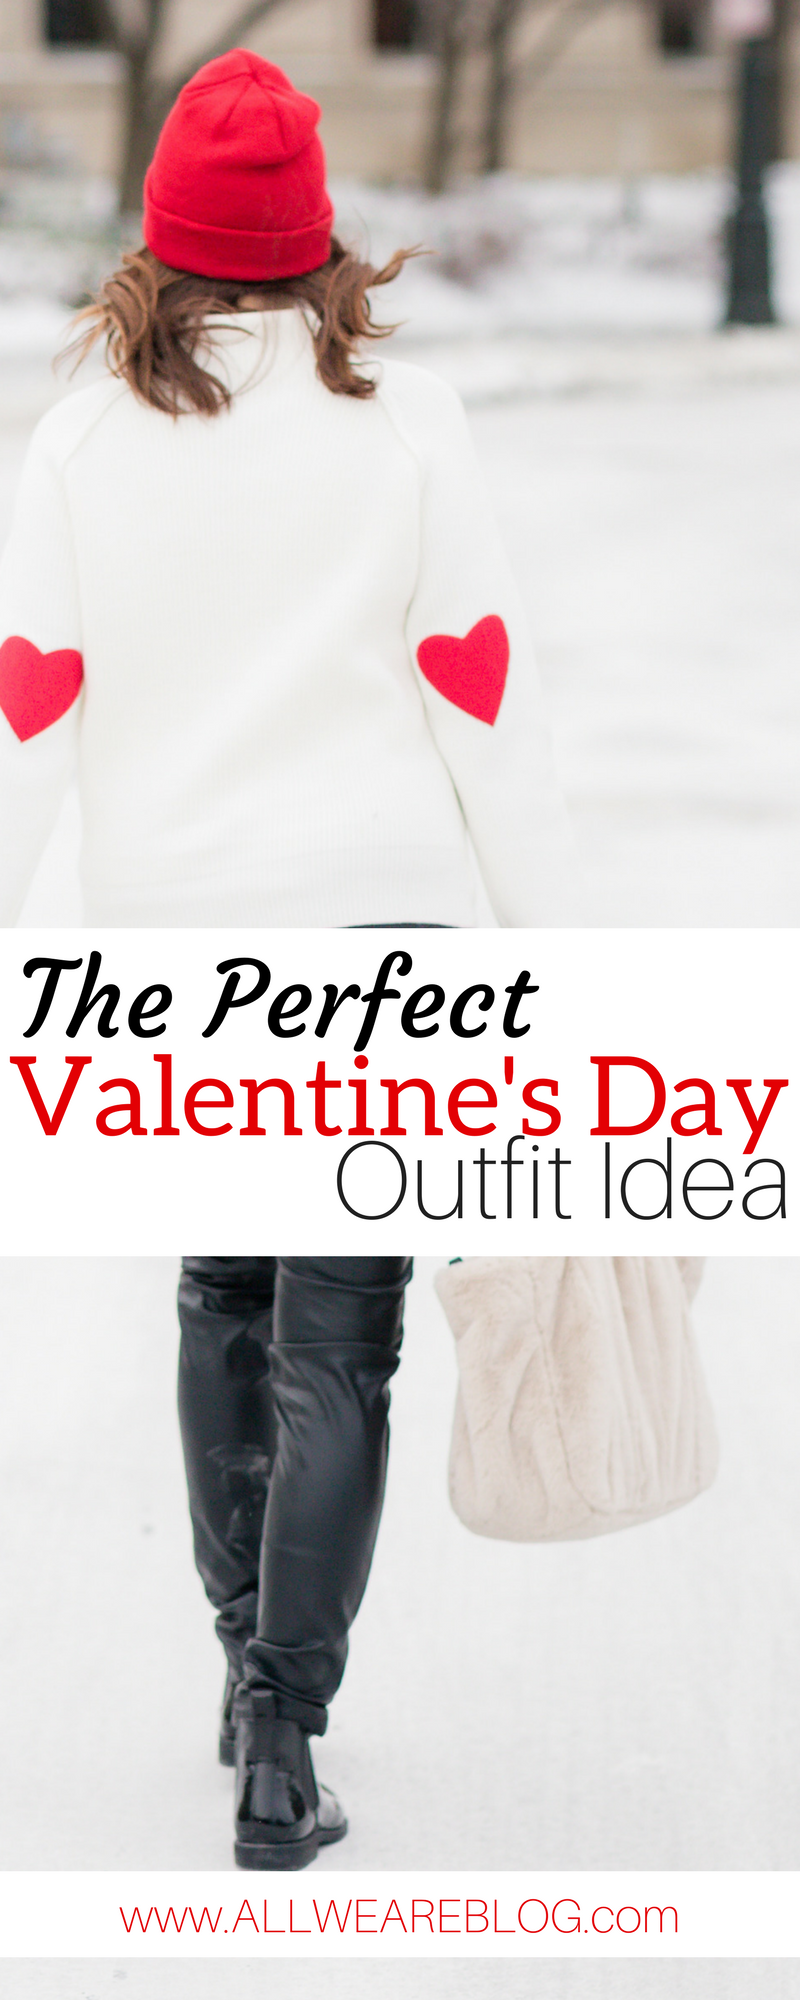 the perfect valentine's day outfit